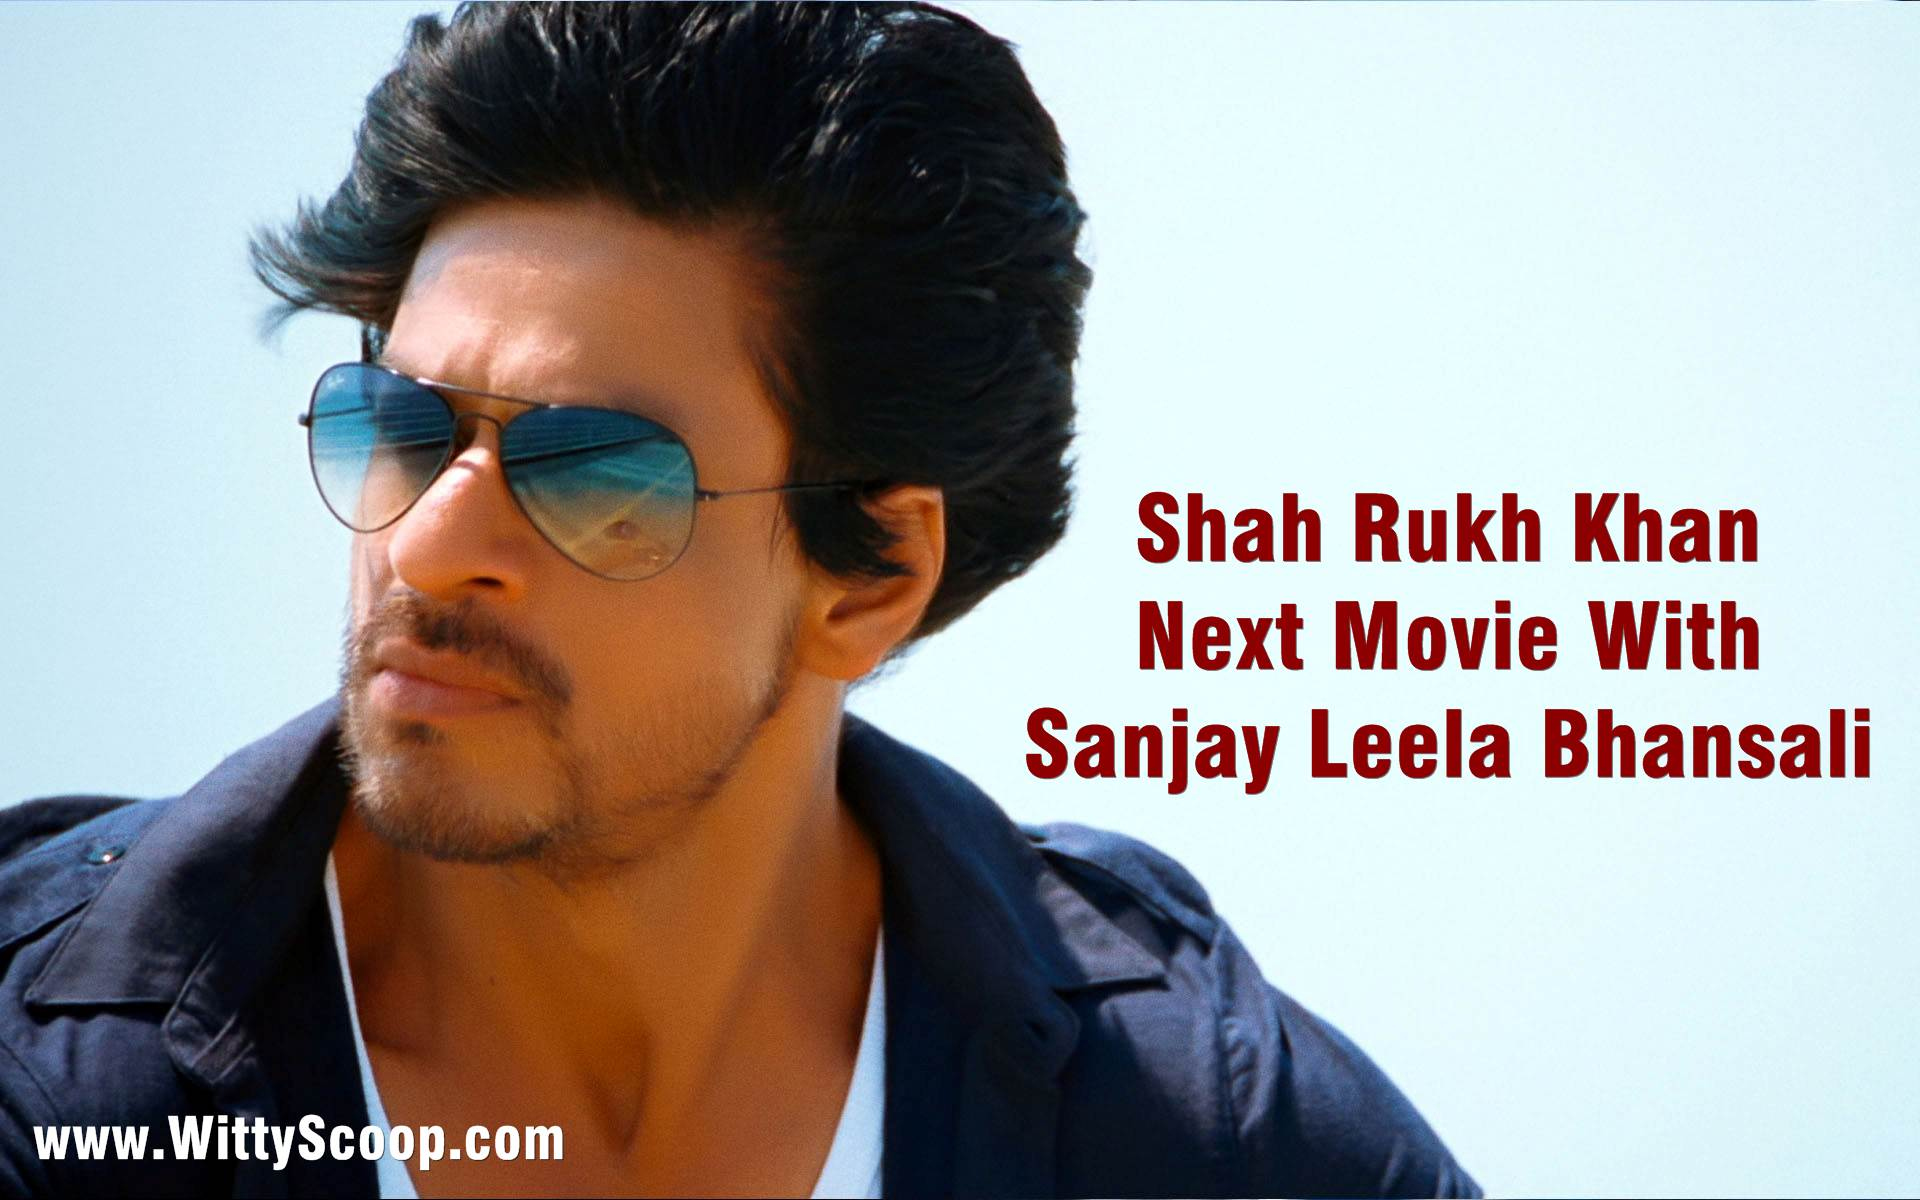 ShahRukh Khan Next Movie With Sanjay Leela Bhansali